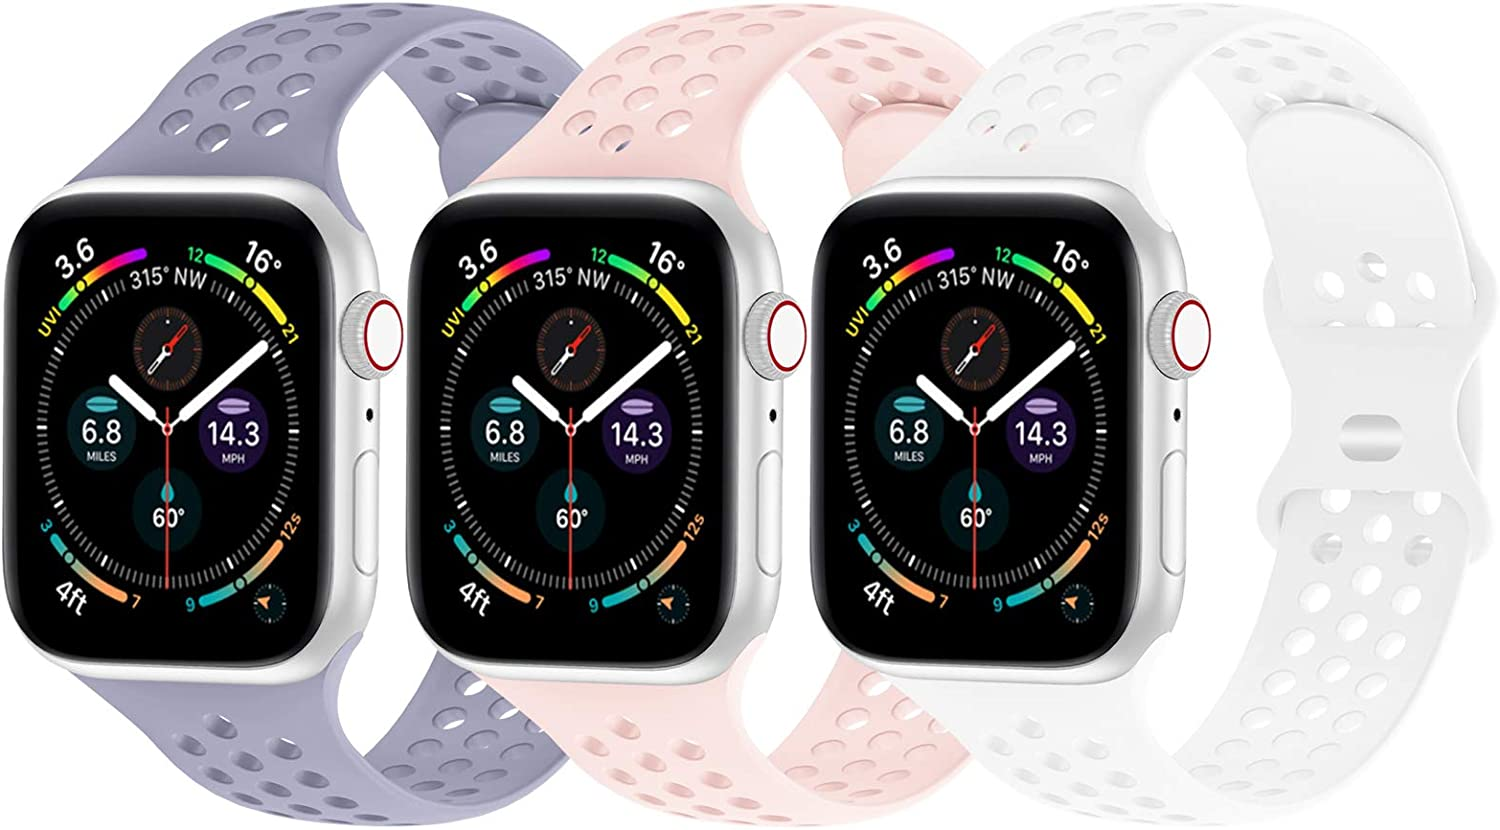 YAXIN Compatible with Apple Watch Band 38mm 40mm 42mm 44mm, Sport Band iWatch Band Compatible for Apple Watch Series SE 6/5/4/3/2/1 Sport Edition, Replacement Strap for Women Men, 3 Pack